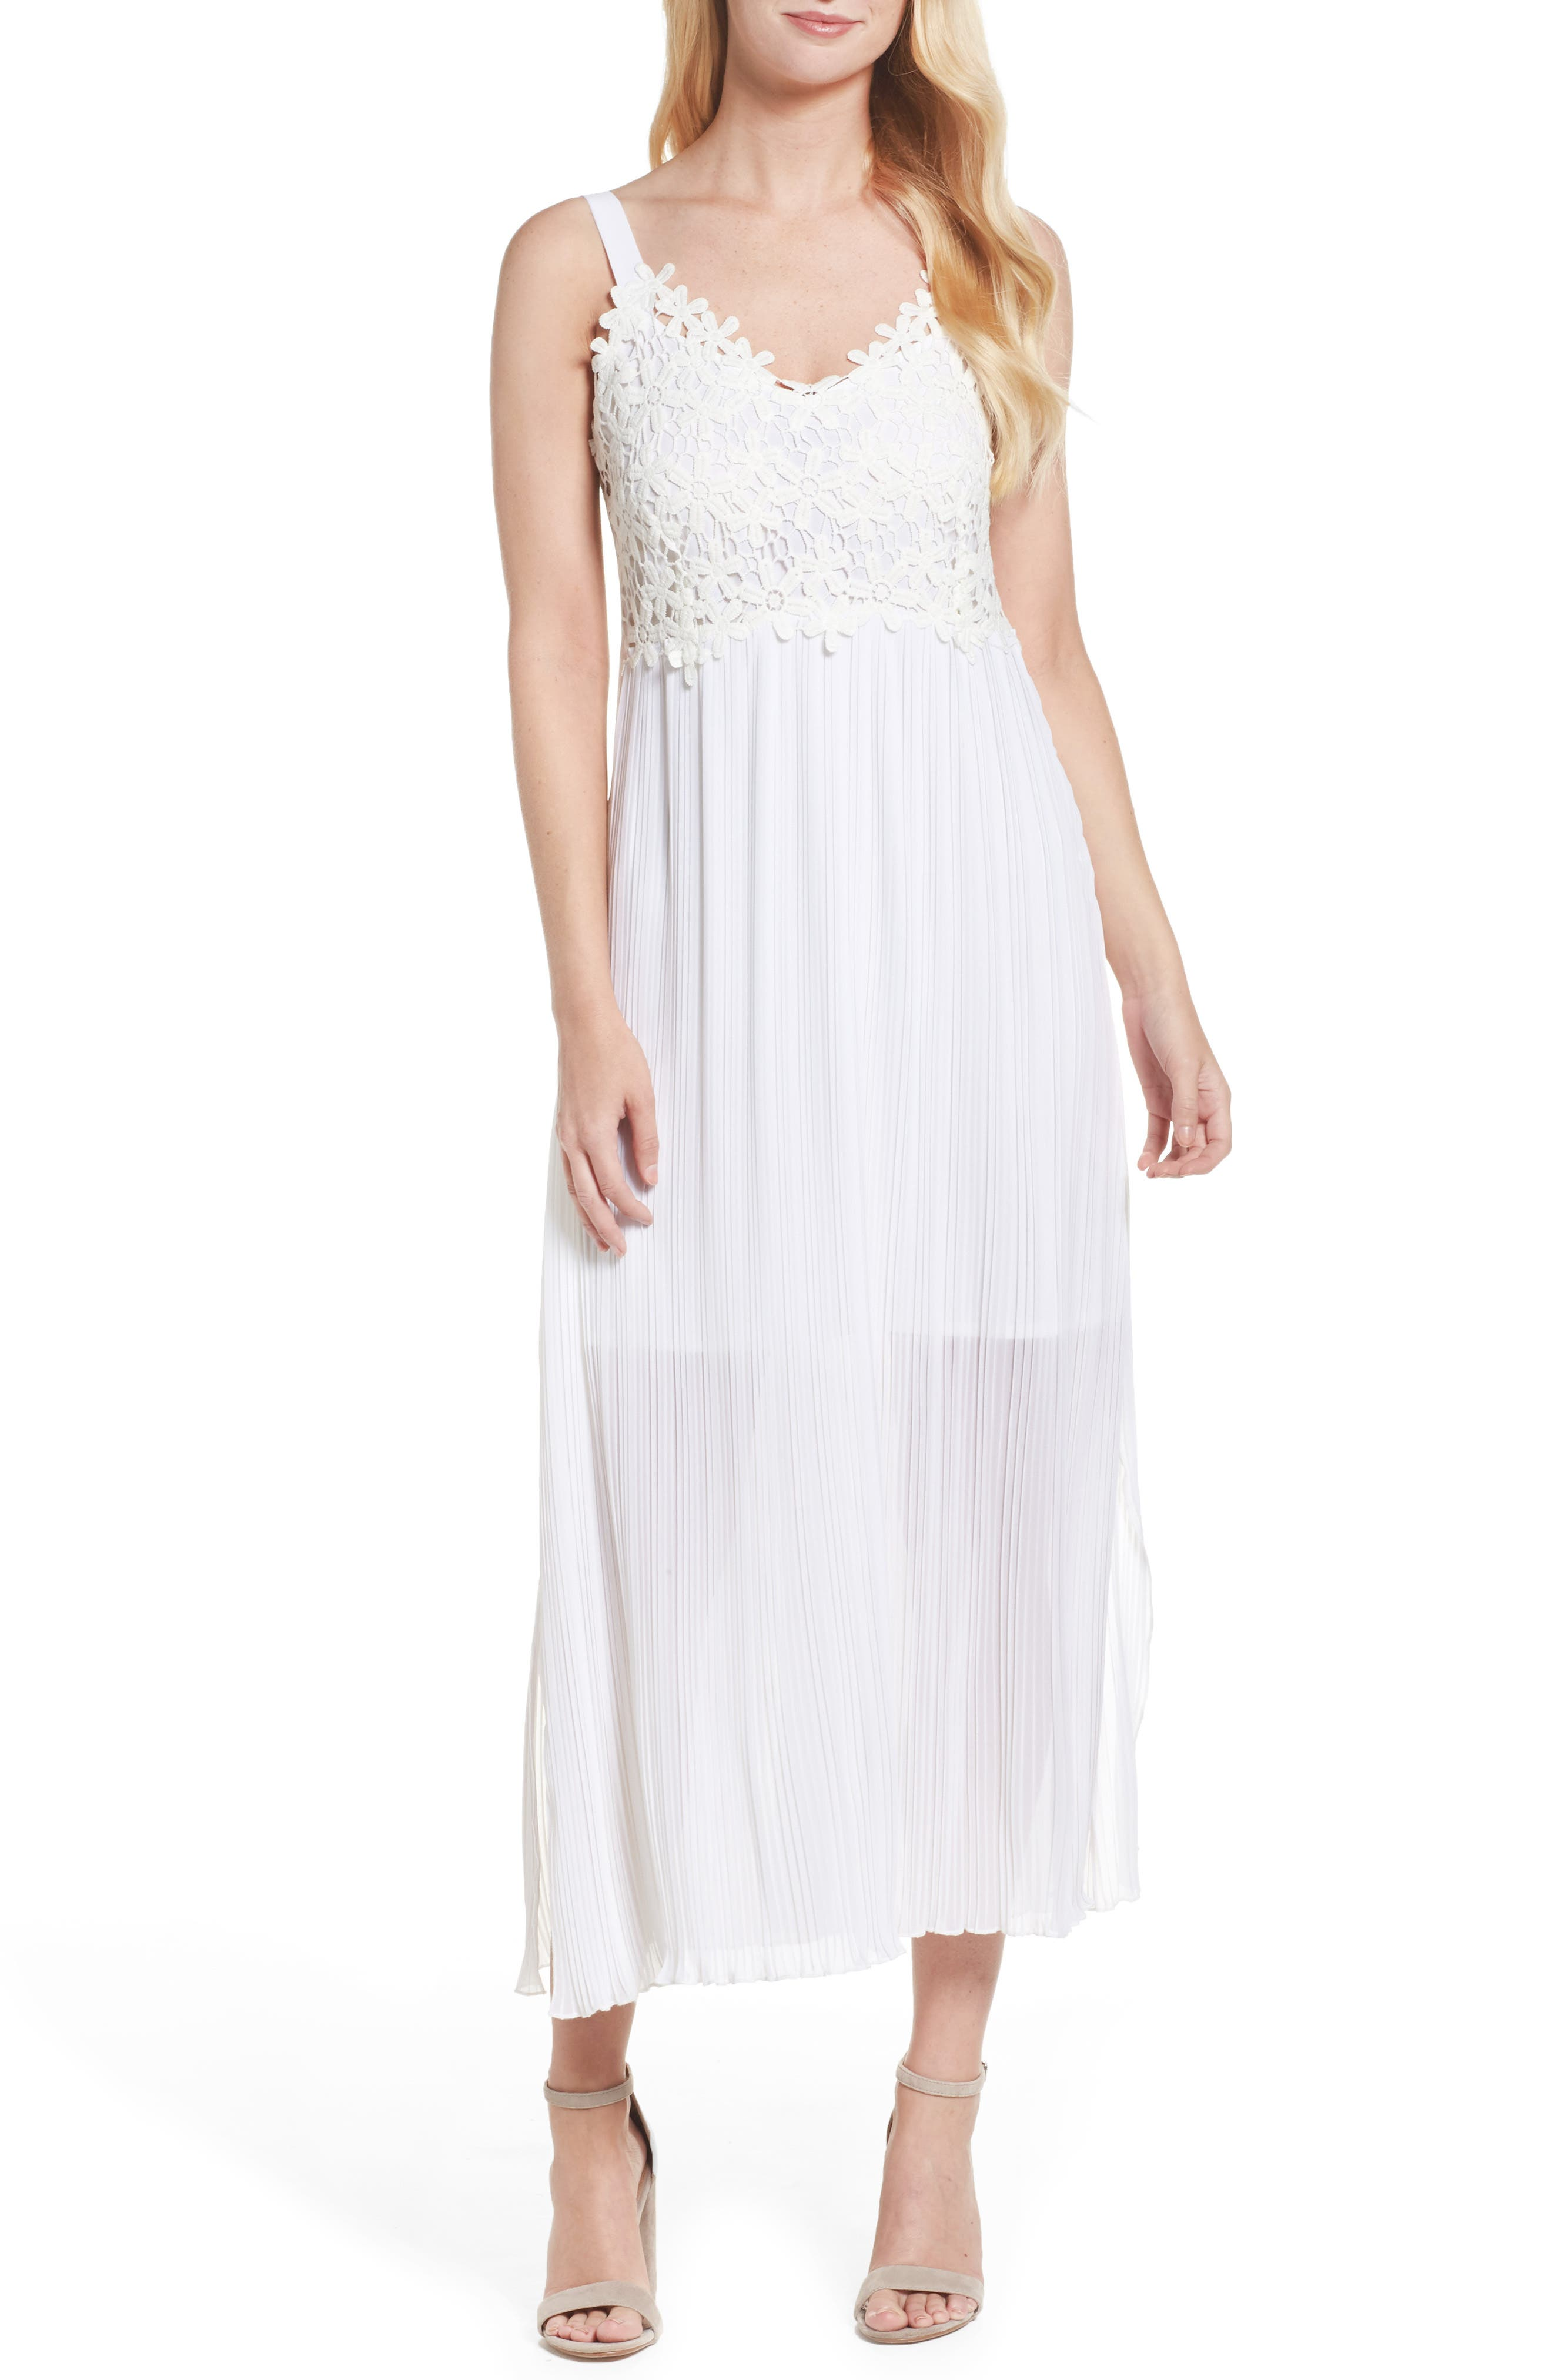 French Coonection Posy Lace Midi Dress,                         Main,                         color, White